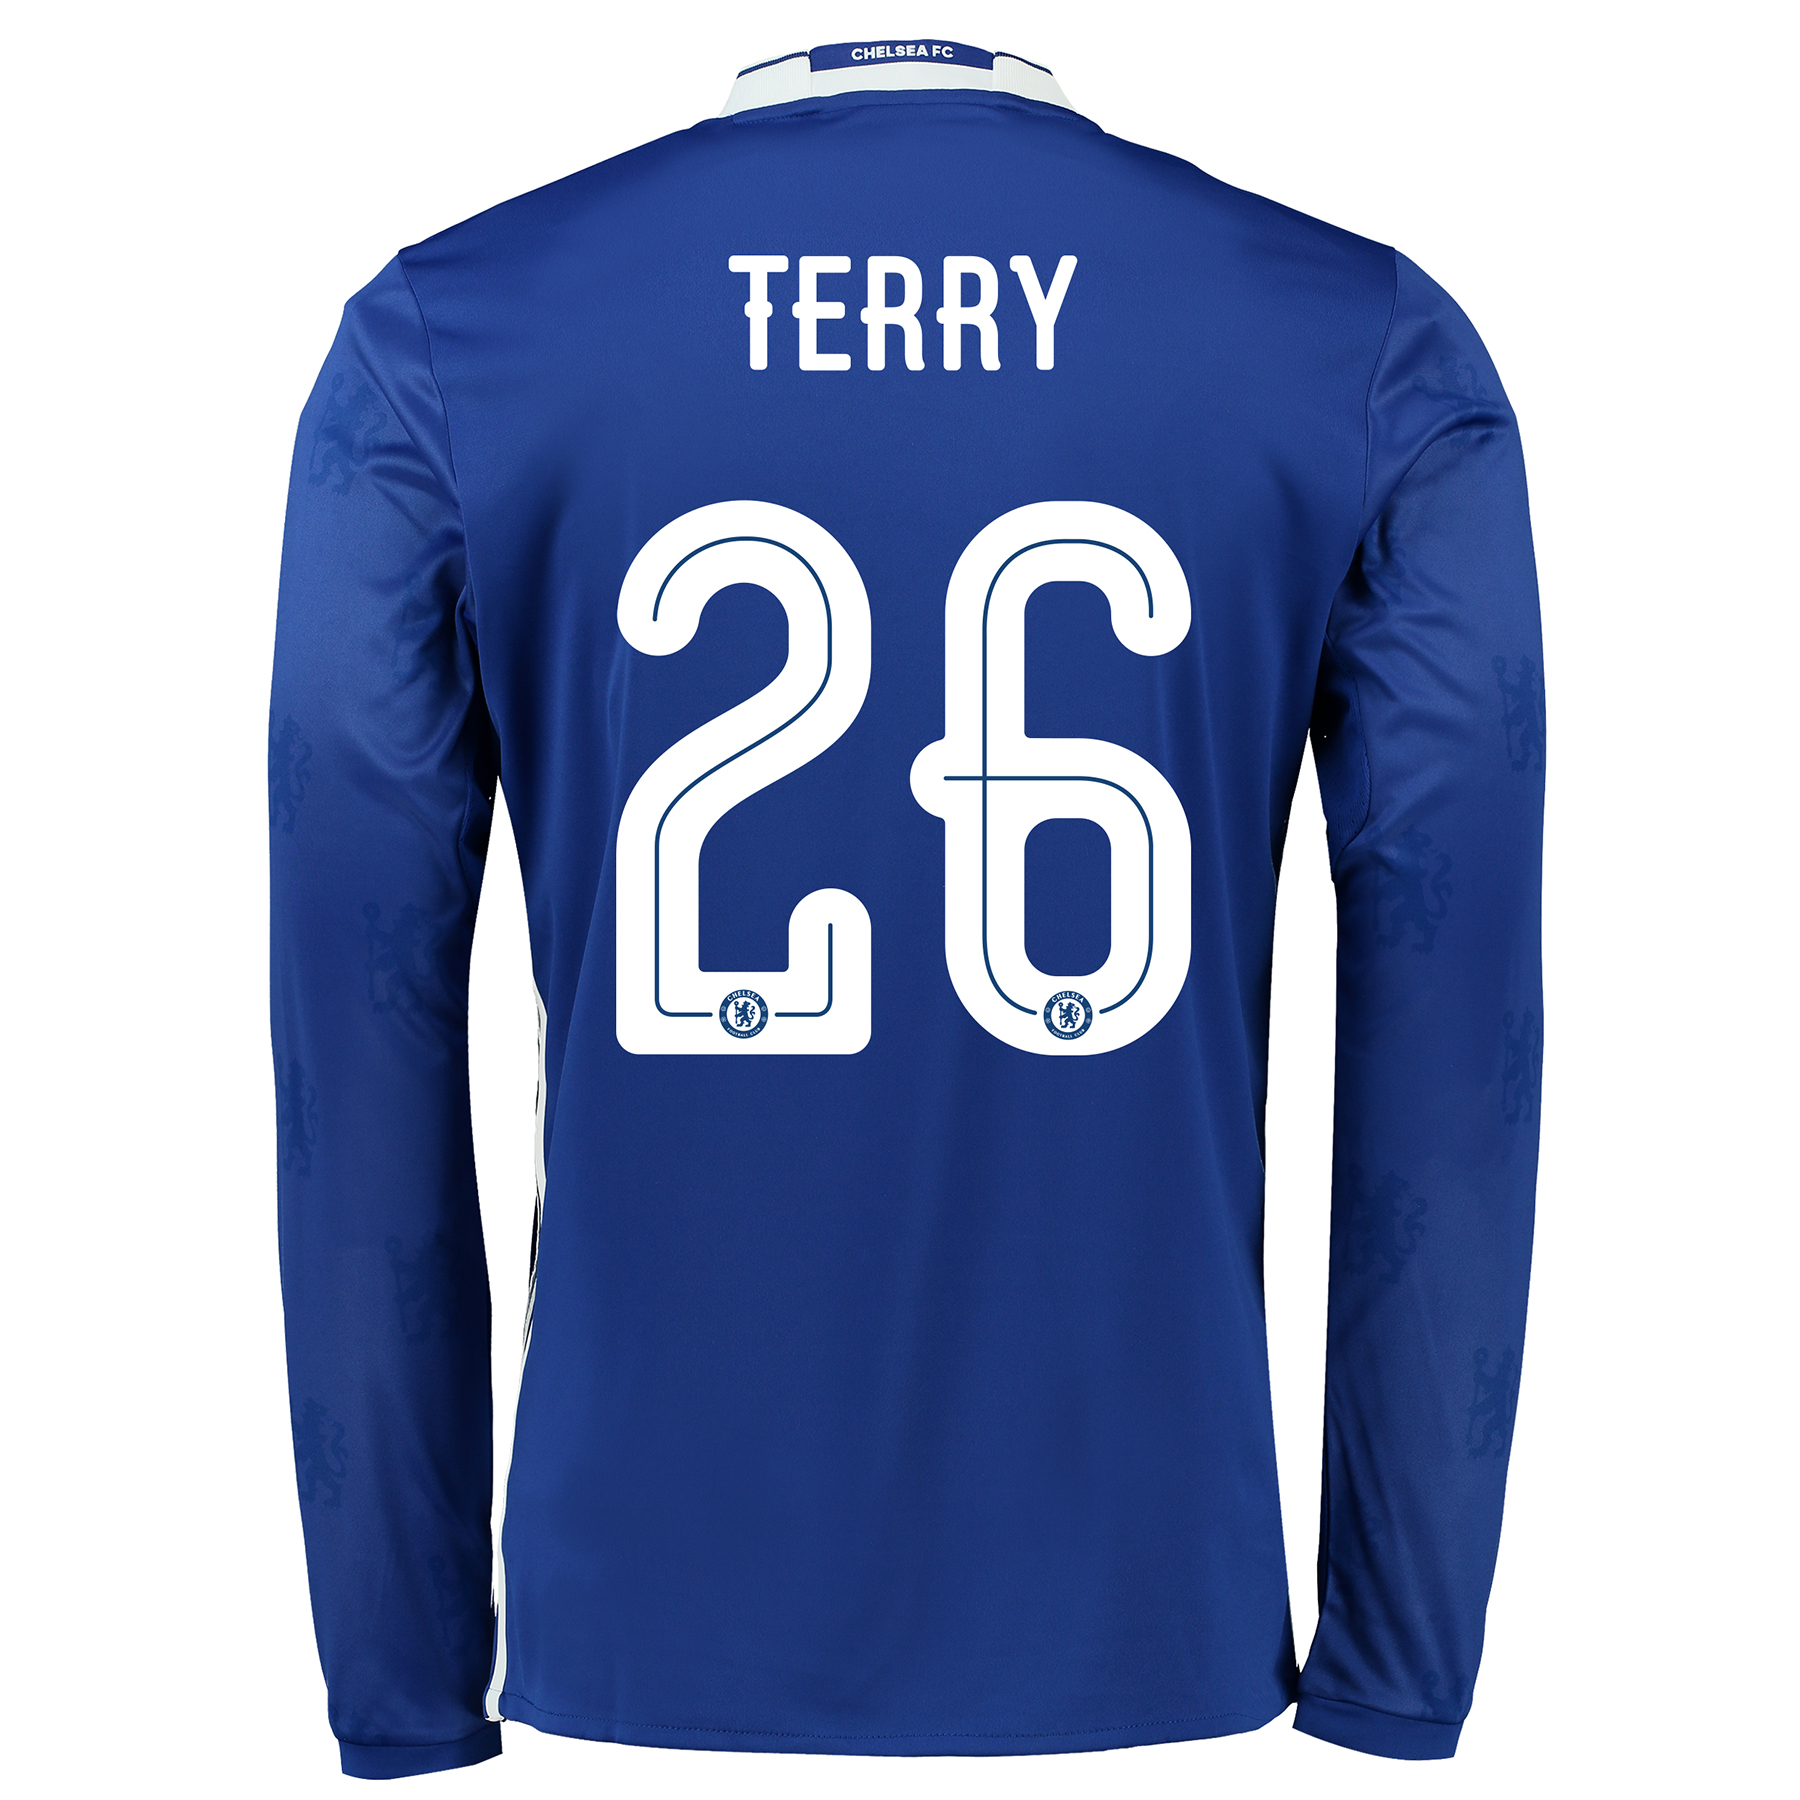 Chelsea Linear Home Shirt 2016-17 - Long Sleeve with Terry 26 printing